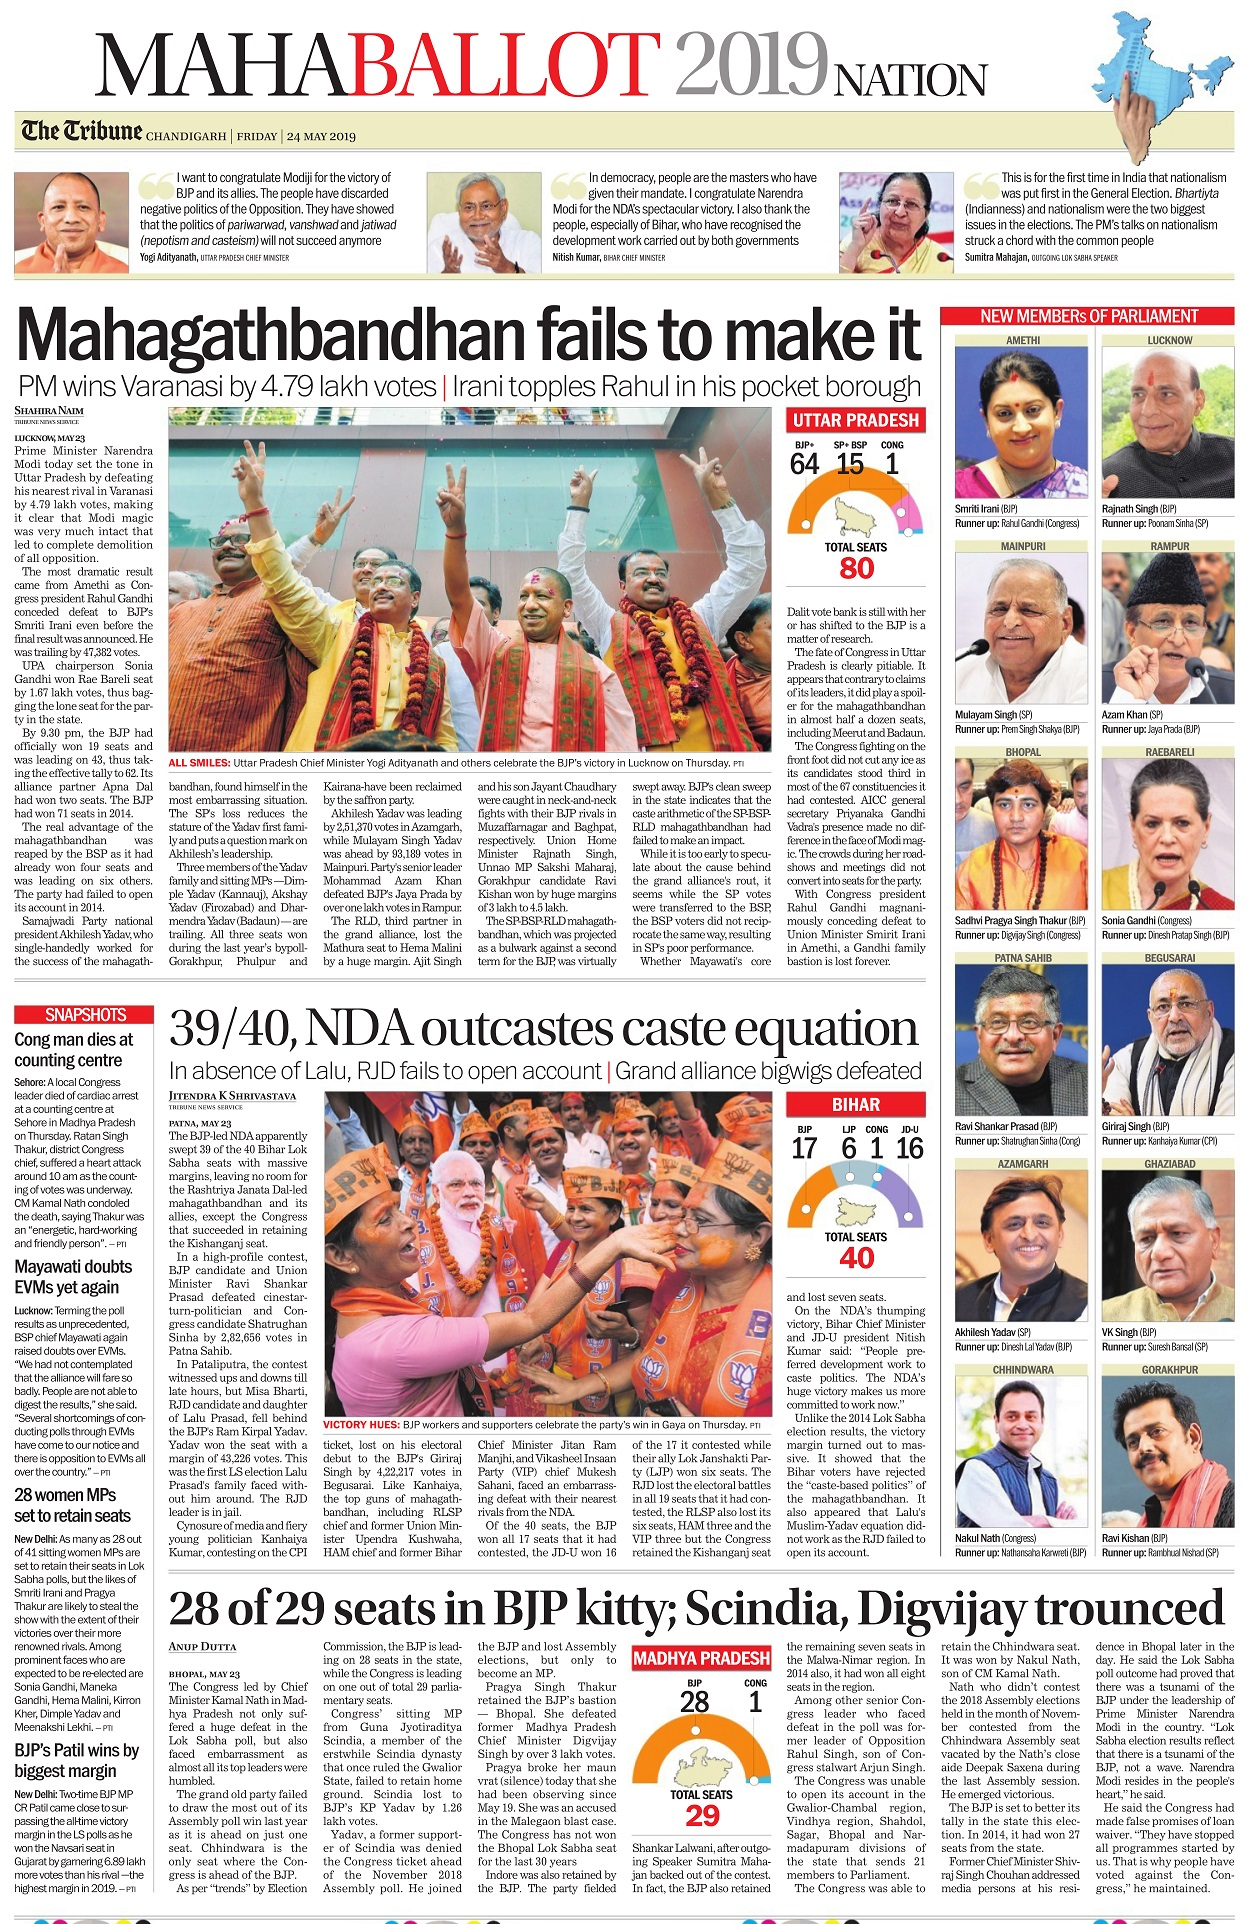 Election Results 2019: Newspapers from around the world react to